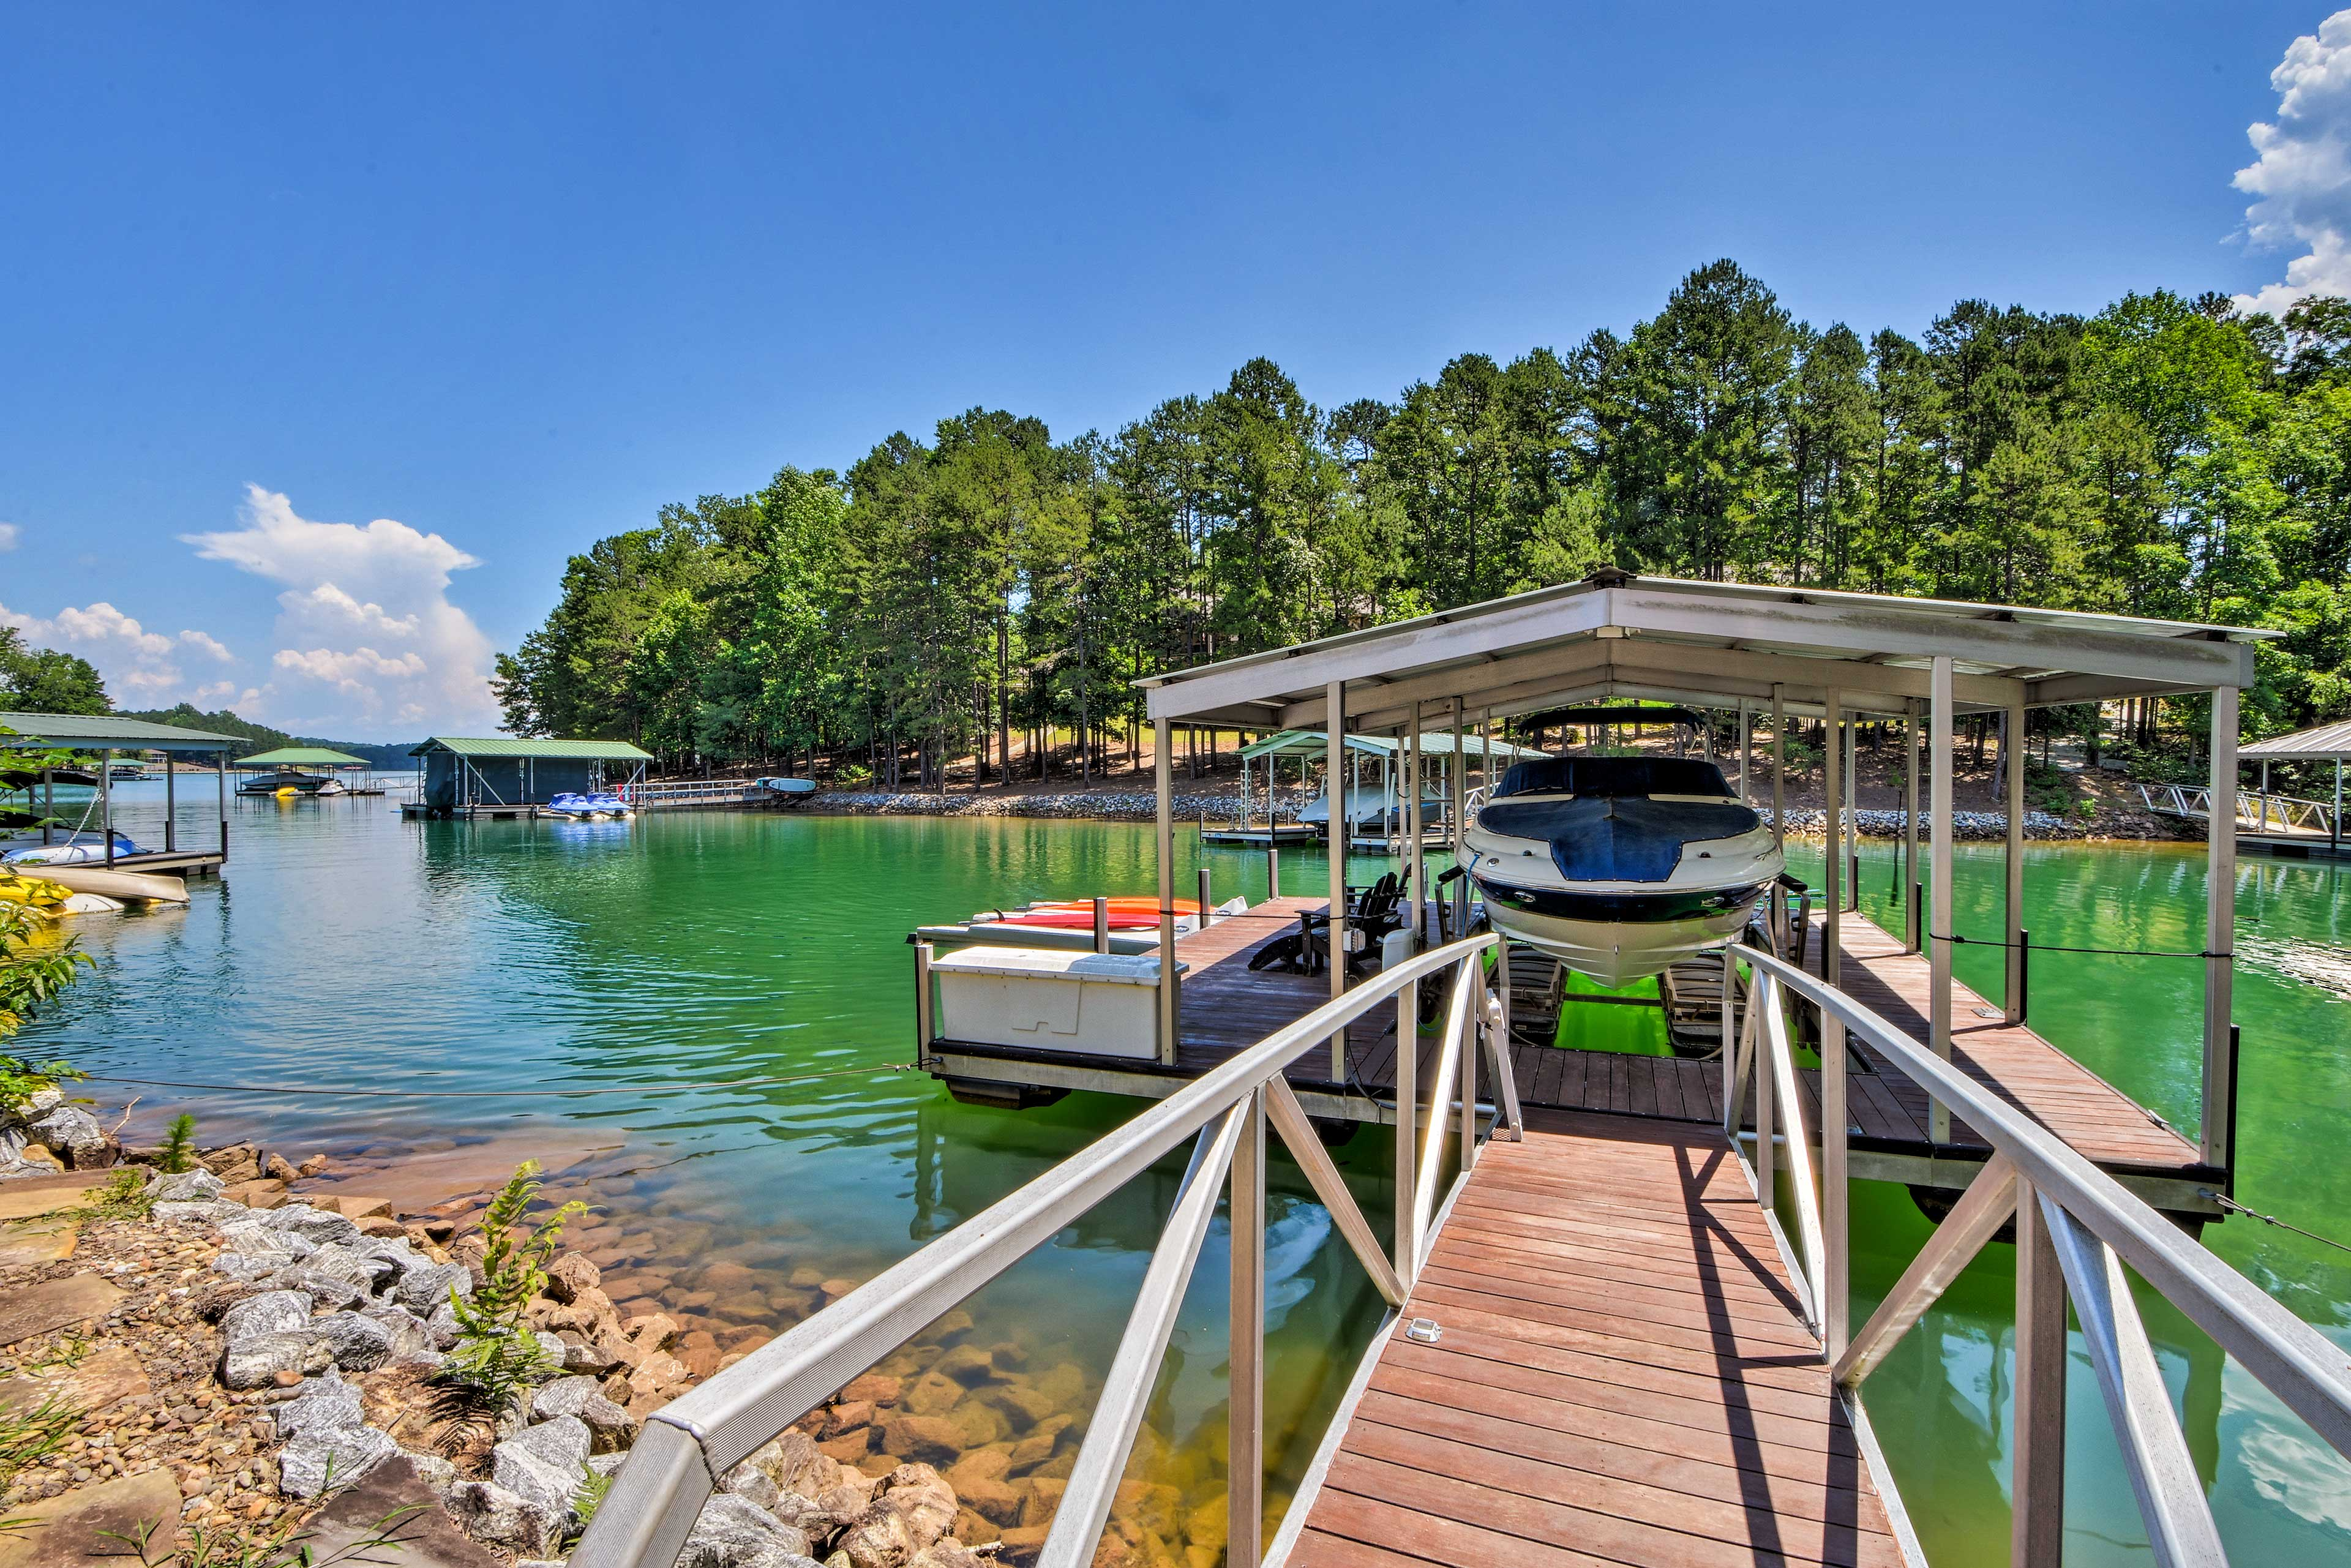 Sit back in the Adirondack chairs and watch your group swim or boats cruise by.